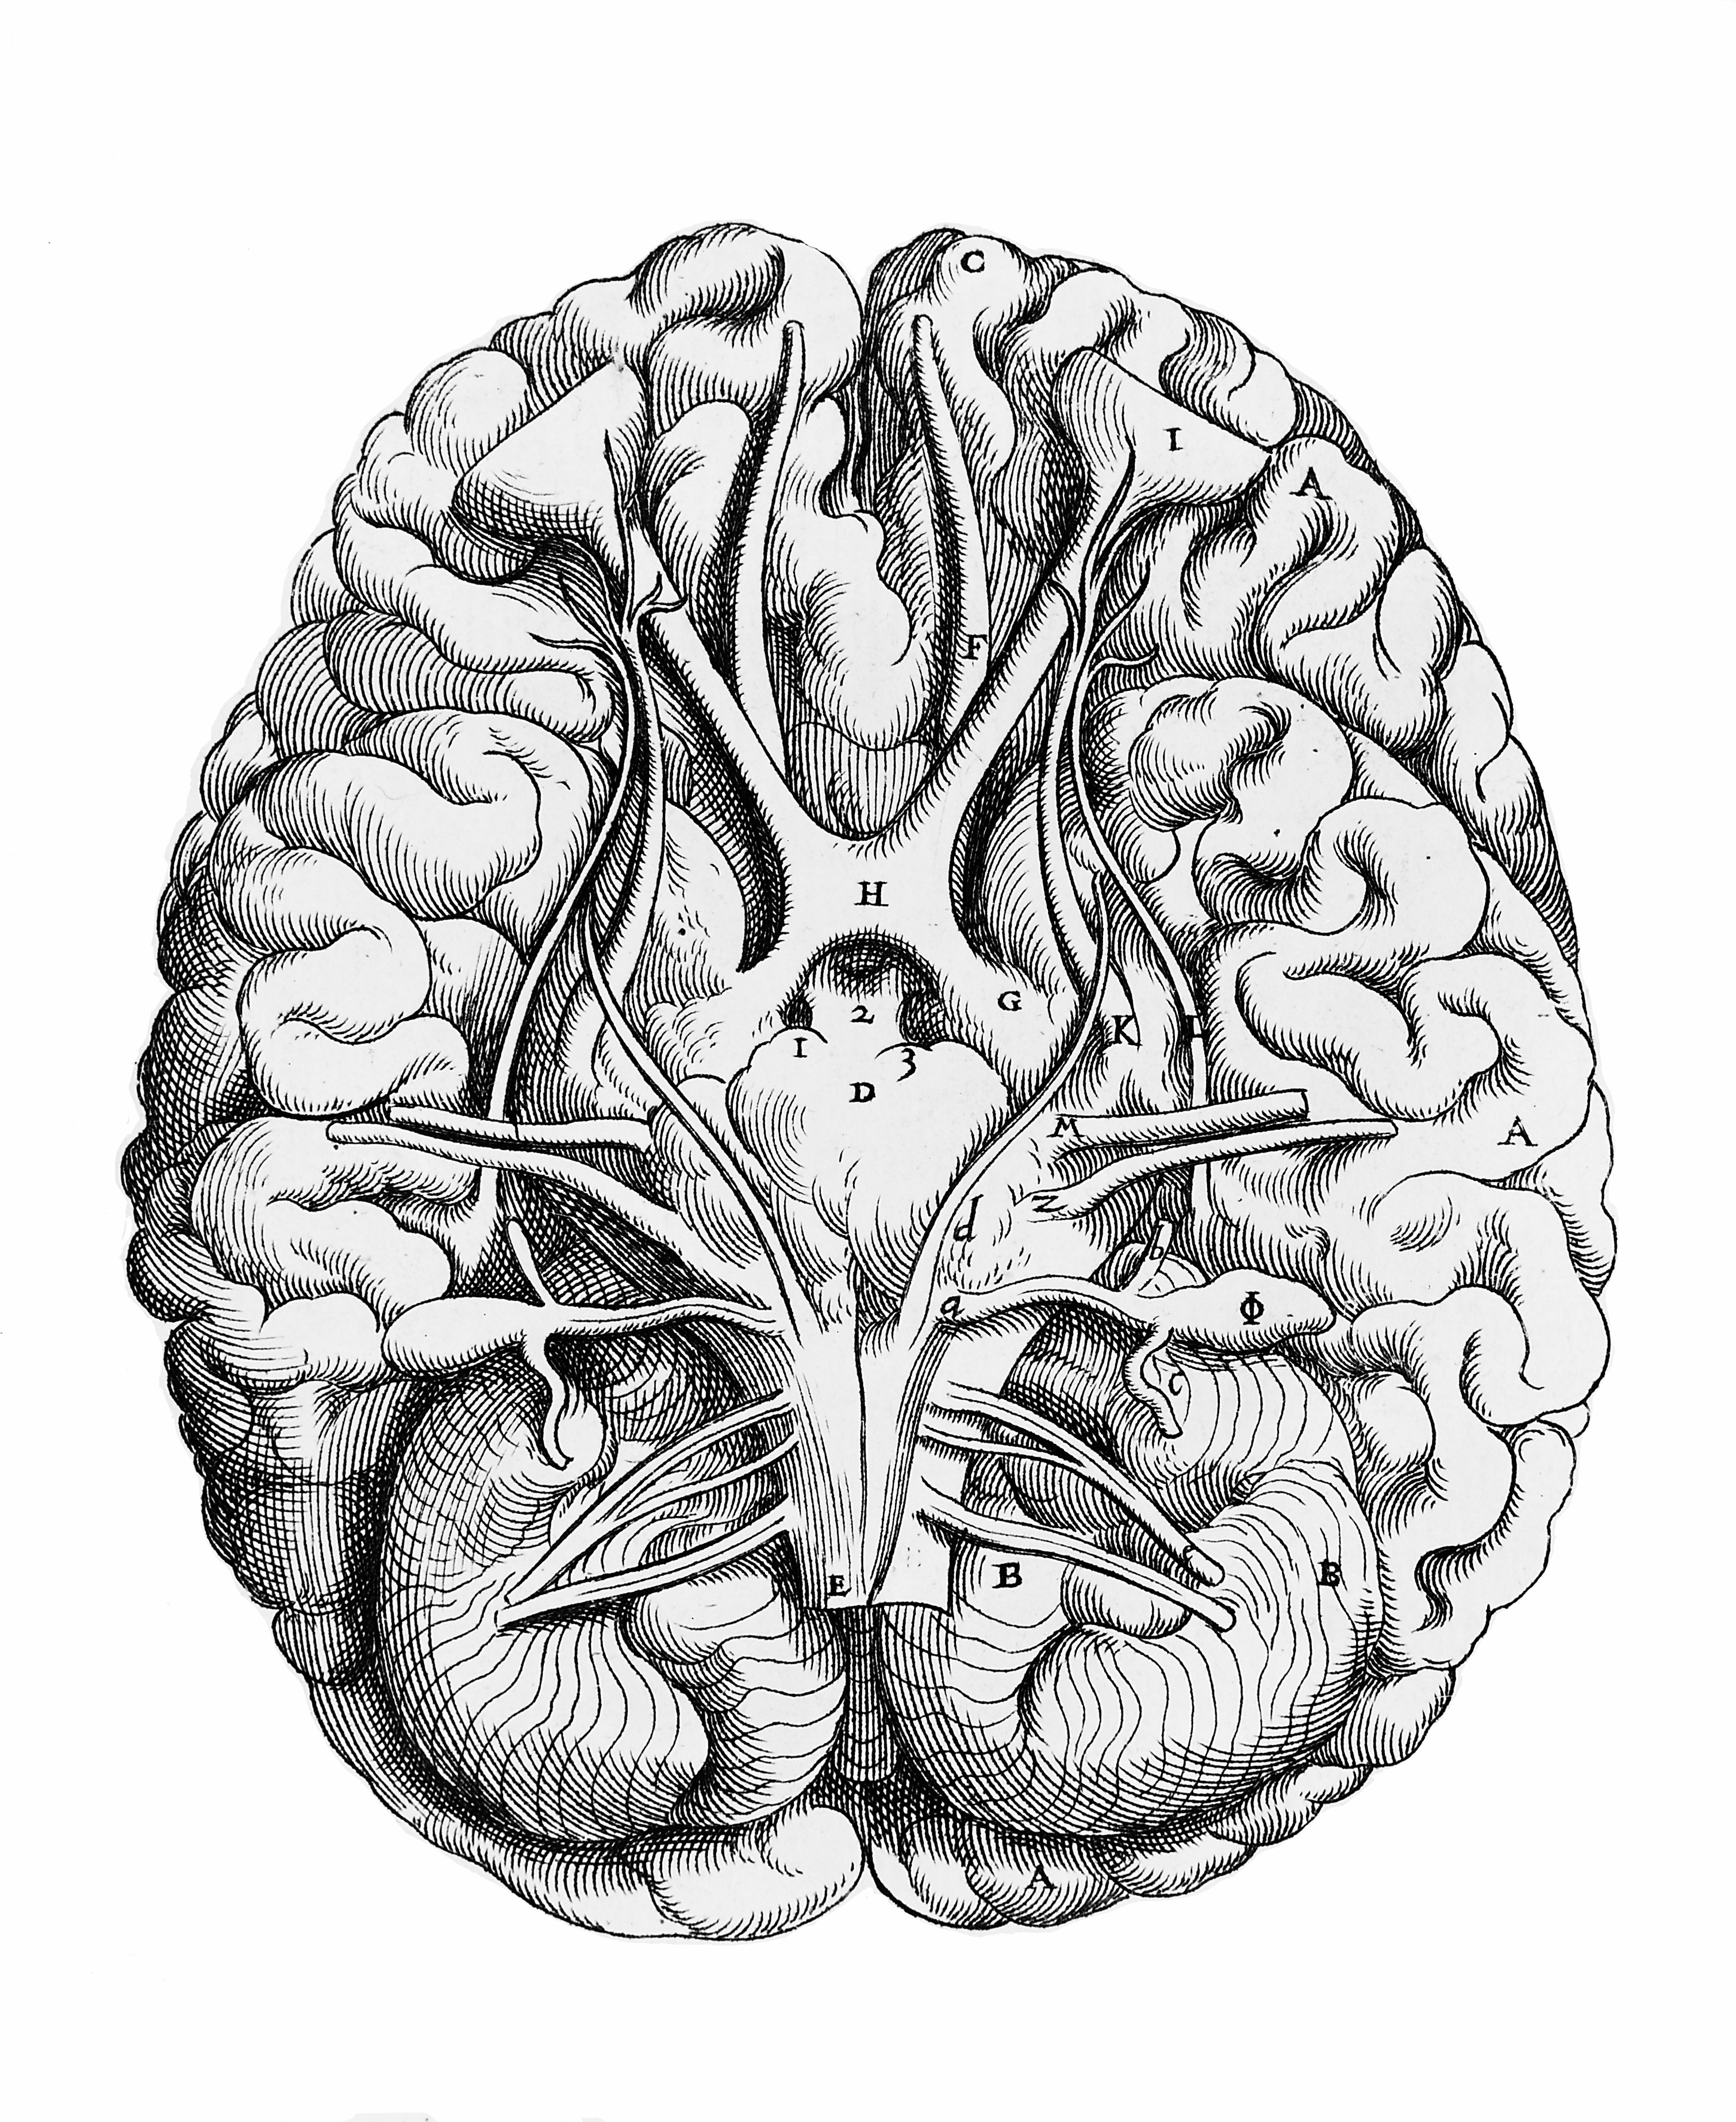 the description of huffing and what it does to the brain The cluster of intolerable symptoms that you describe may be linked to long-term neurological effects of huffing, as you seem to suspect it is known that glue contains neurotoxic chemicals like toluene this and other neurotoxins are known to damage or kill brain cells that do not regenerate toluene has.